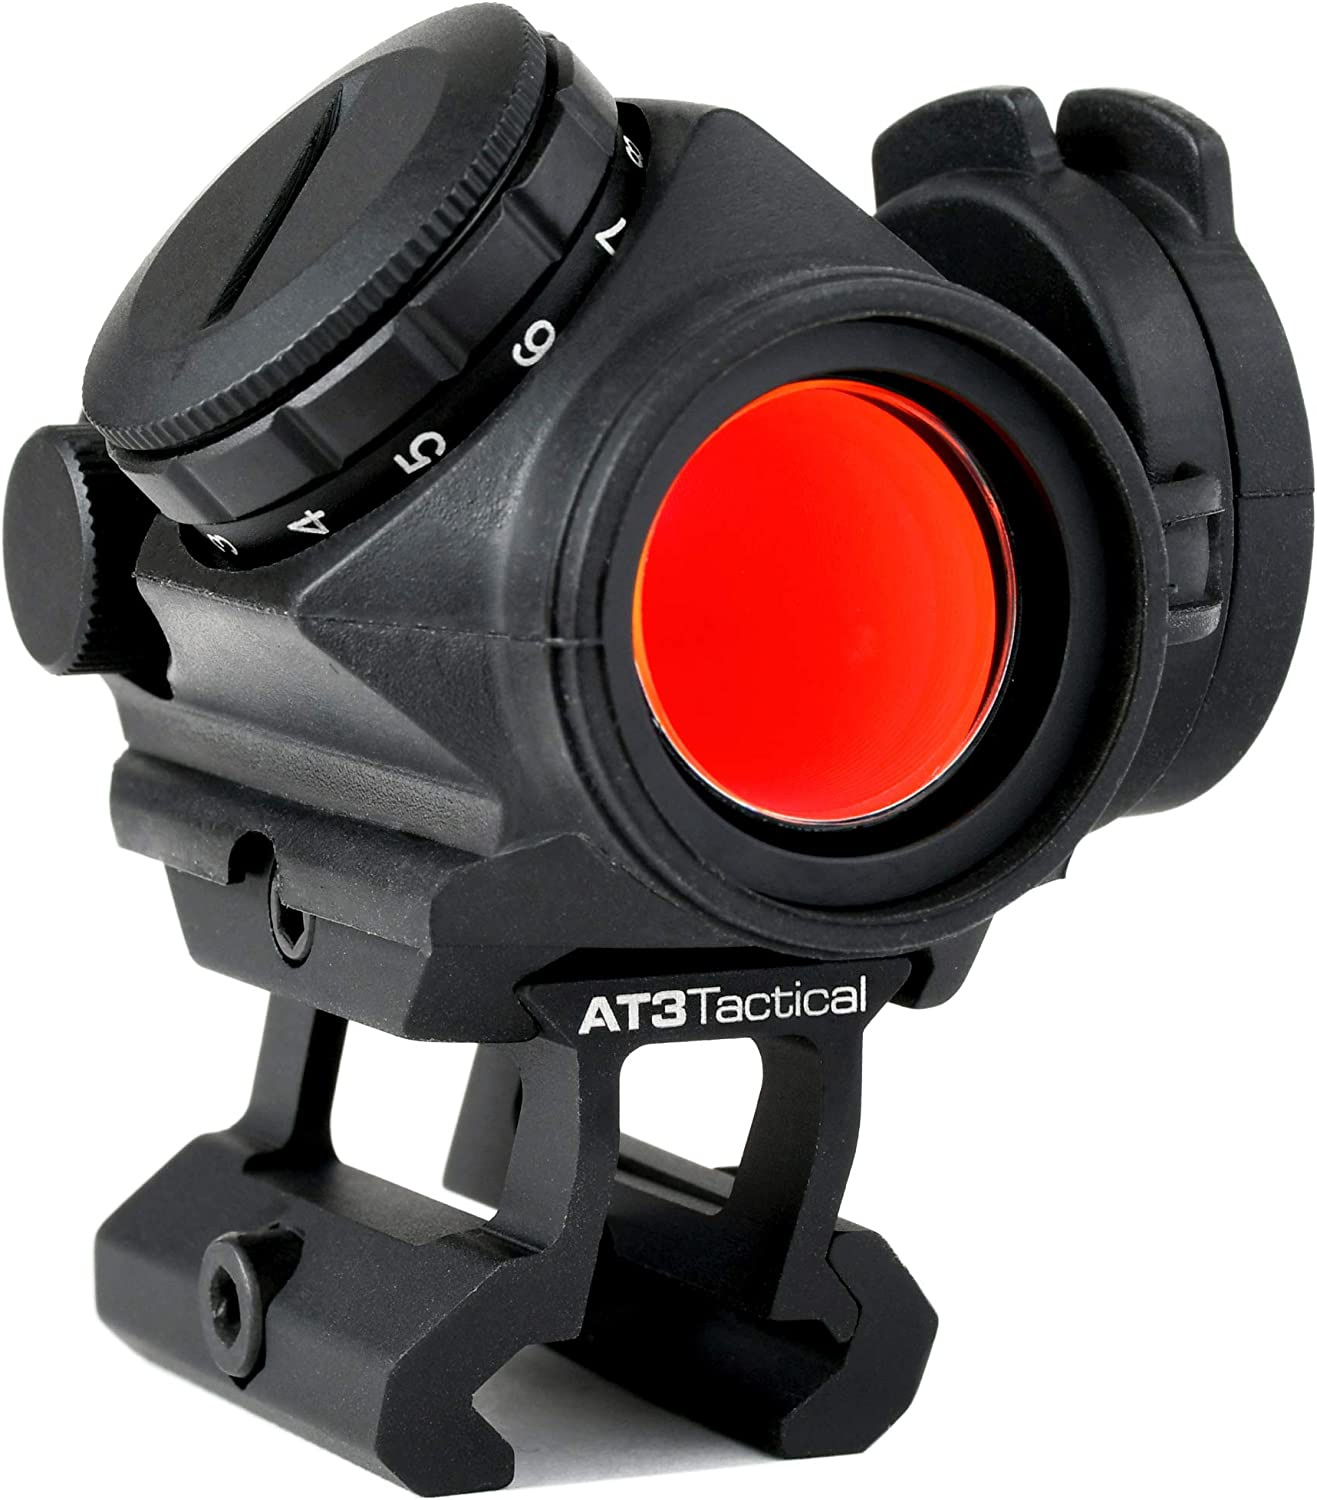 AT3-Tactical-RD-50-Red-Dot-Sight-Scope